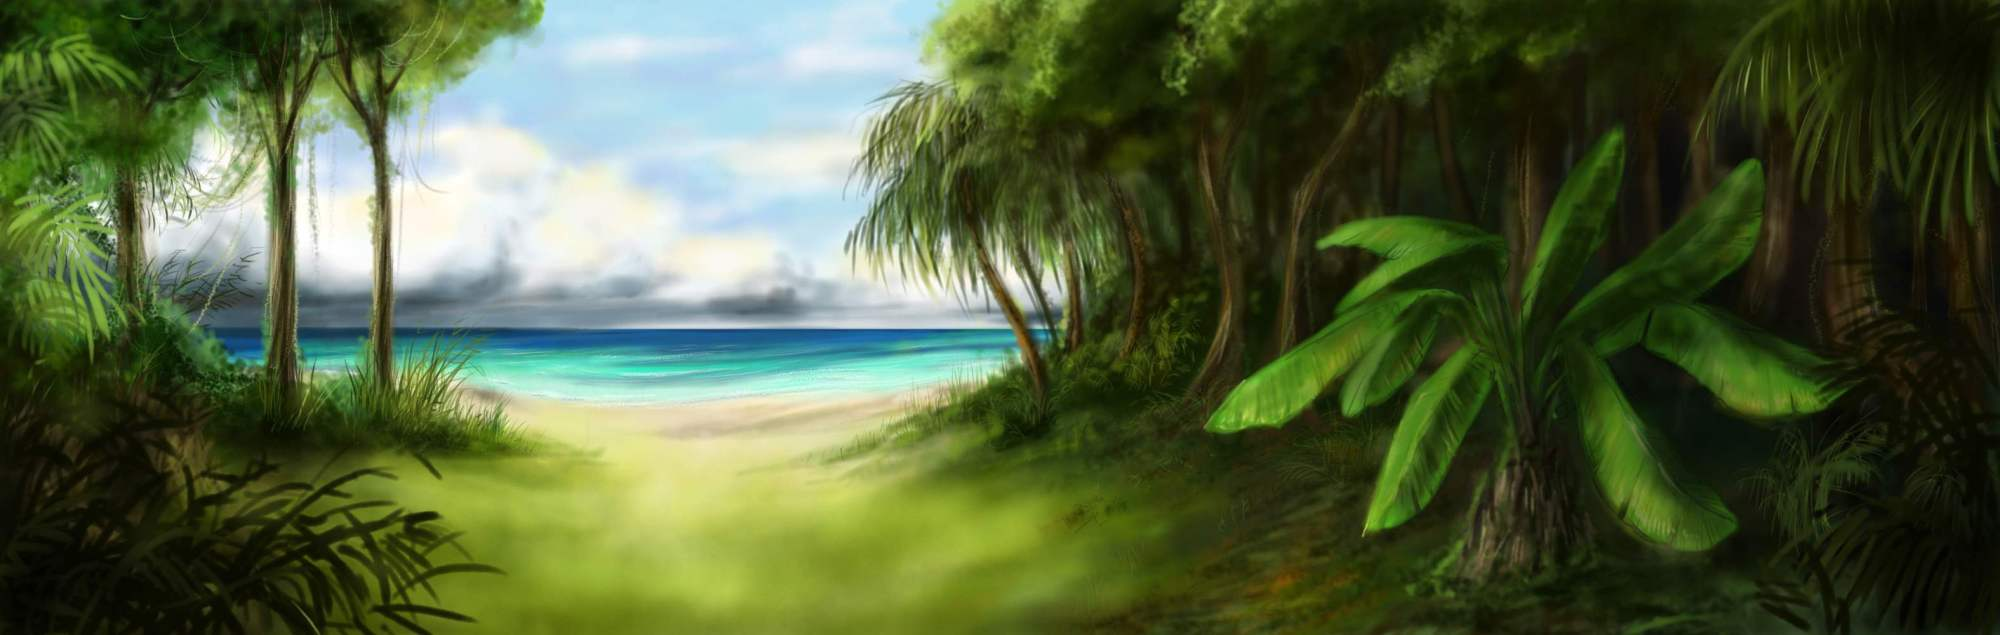 Animated Jungle Wallpaper Jungle Backgrounds Wallpaper Cave